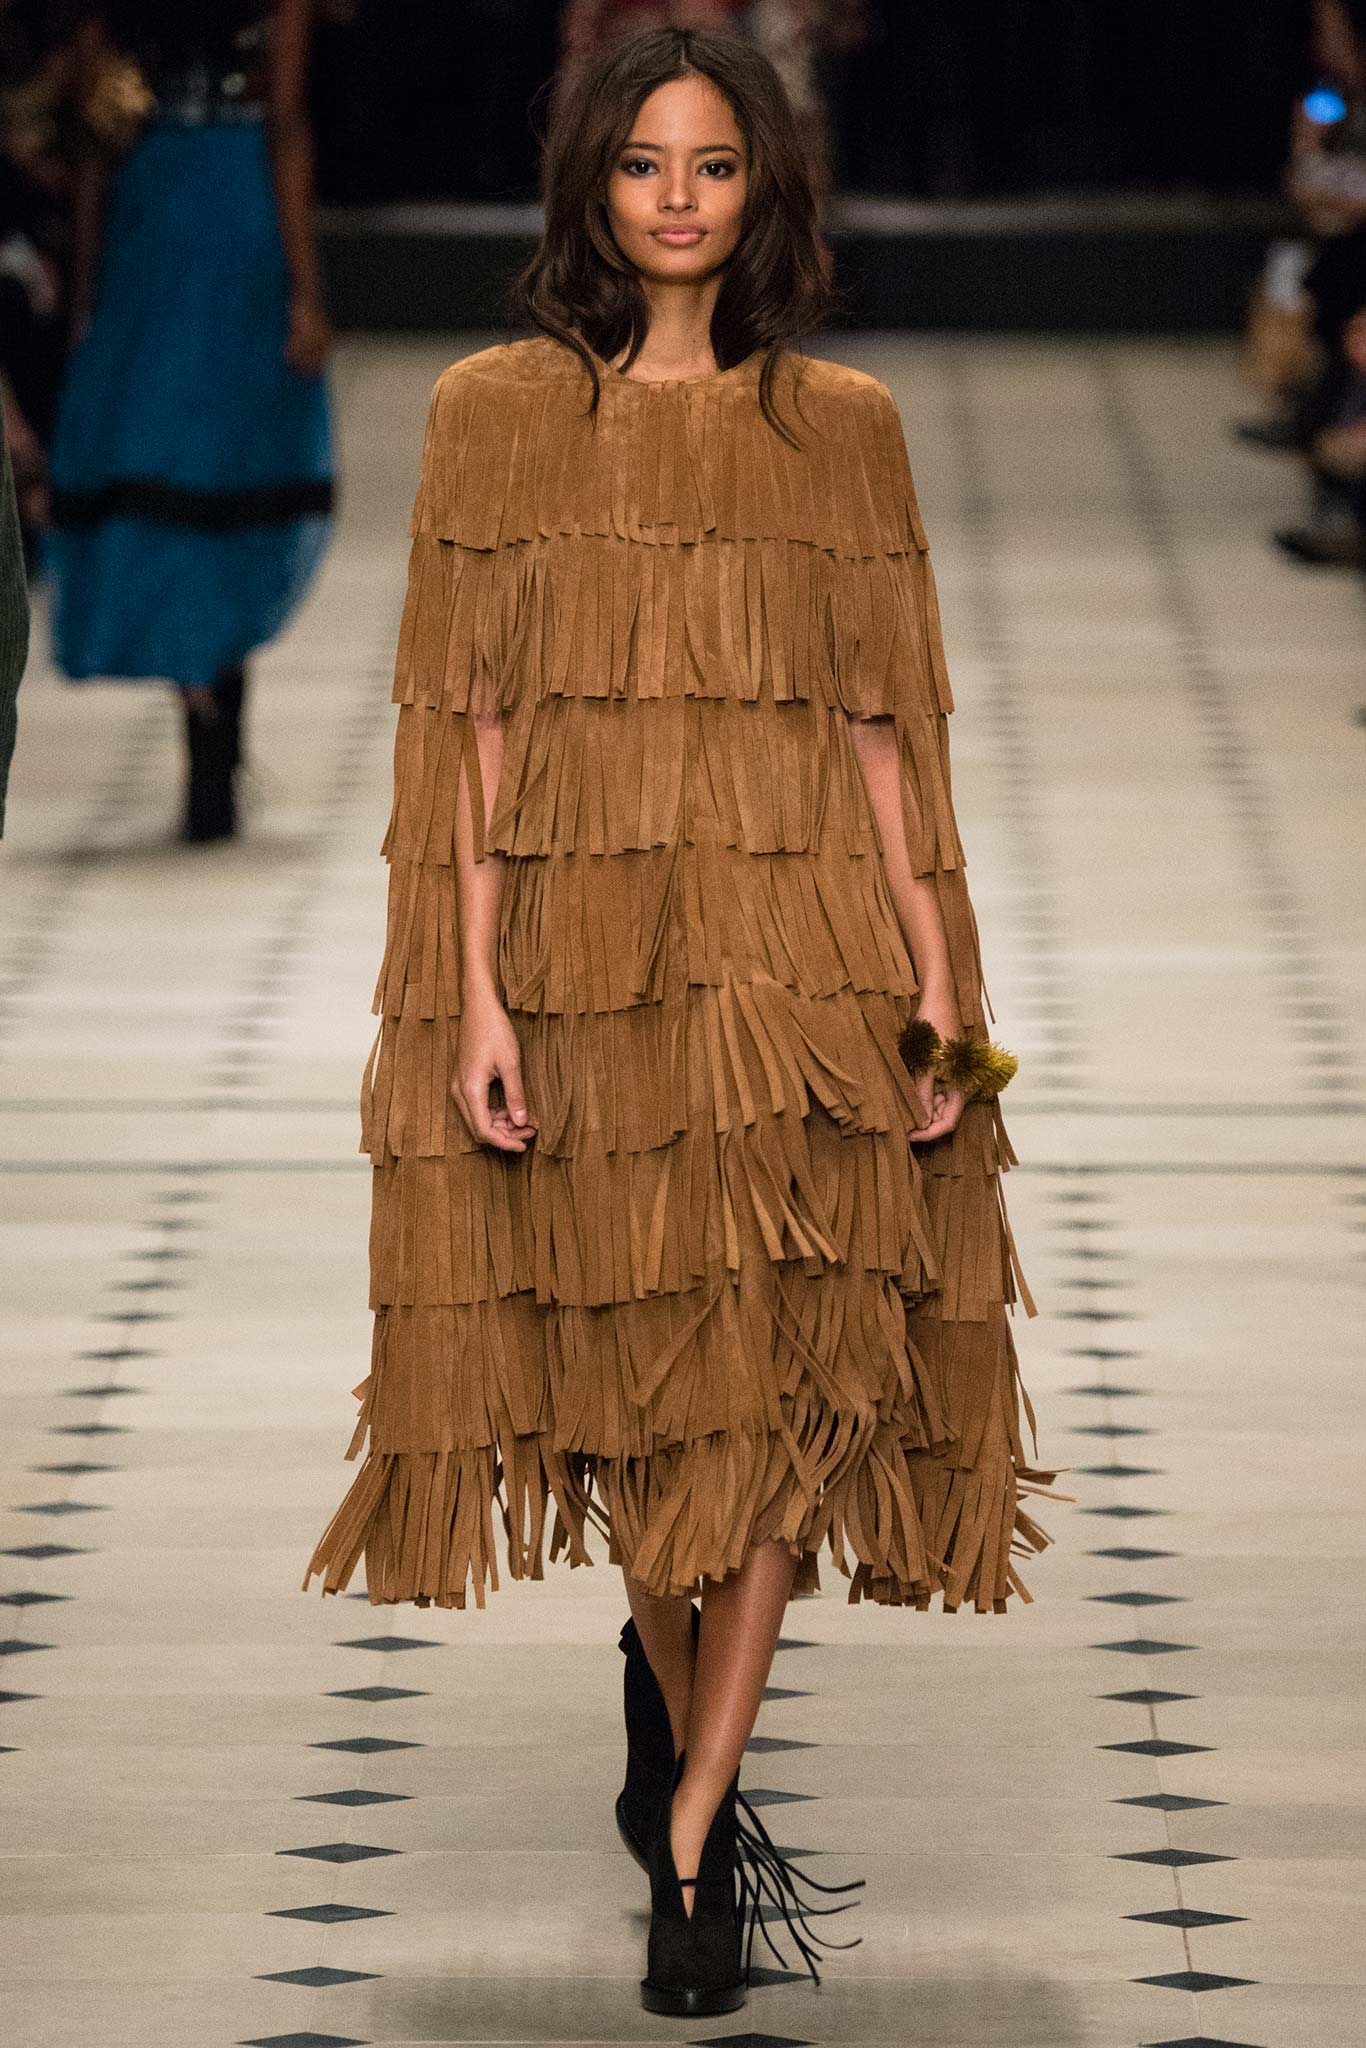 Fringe Trend At Fall-Winter 2015 Runway Shows